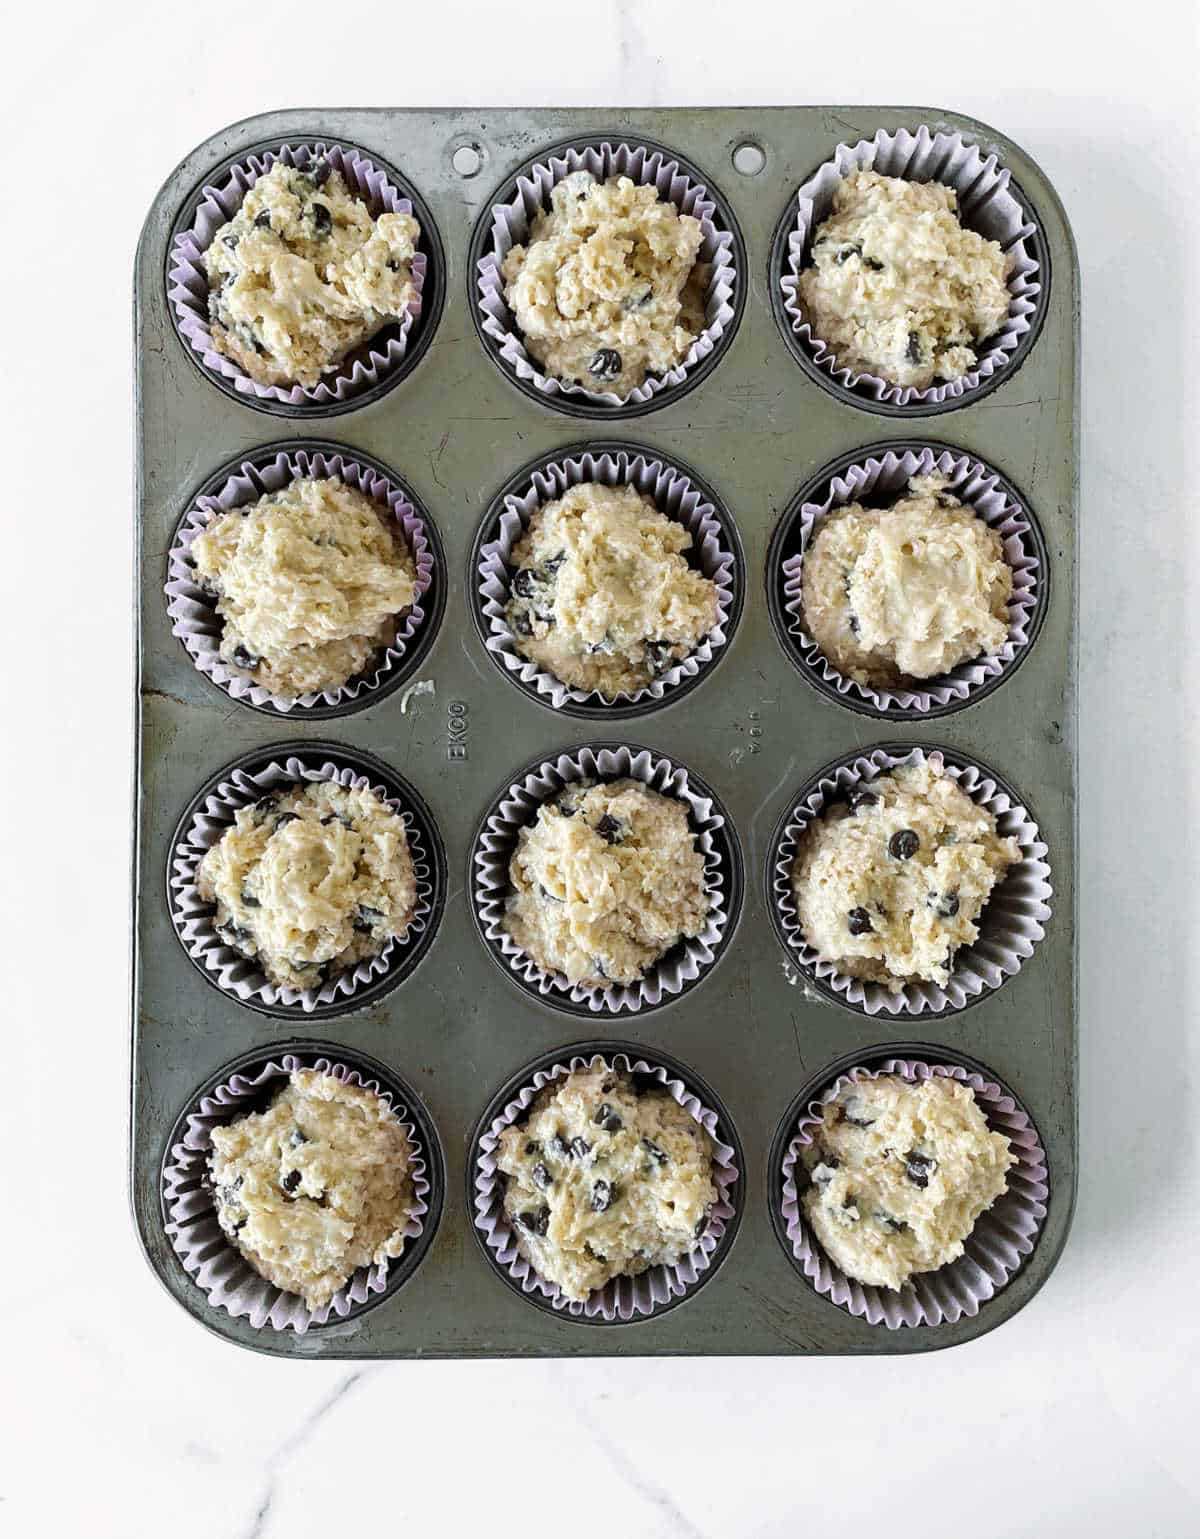 Top view of metal muffin pan with unbaked oatmeal muffins, white surface